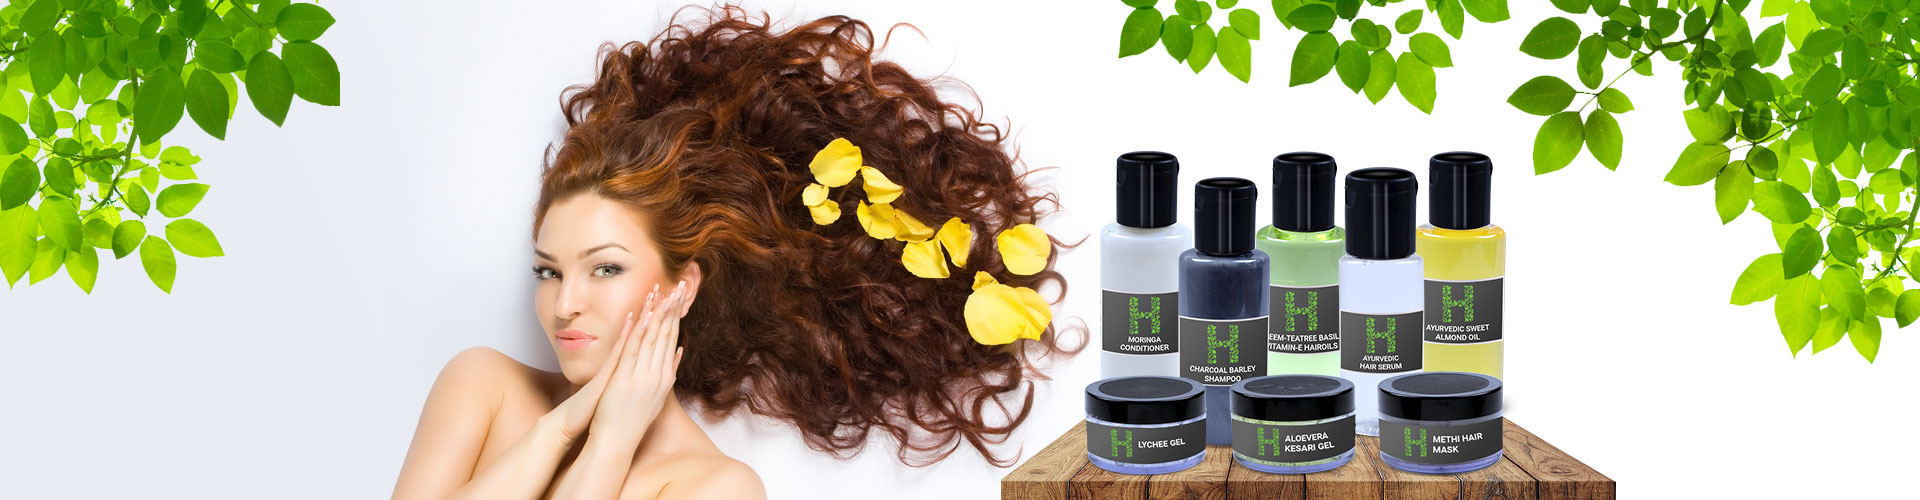 Private Label Hair Care Products Cosmetics Contract Manufacturing Hair Cosmetics